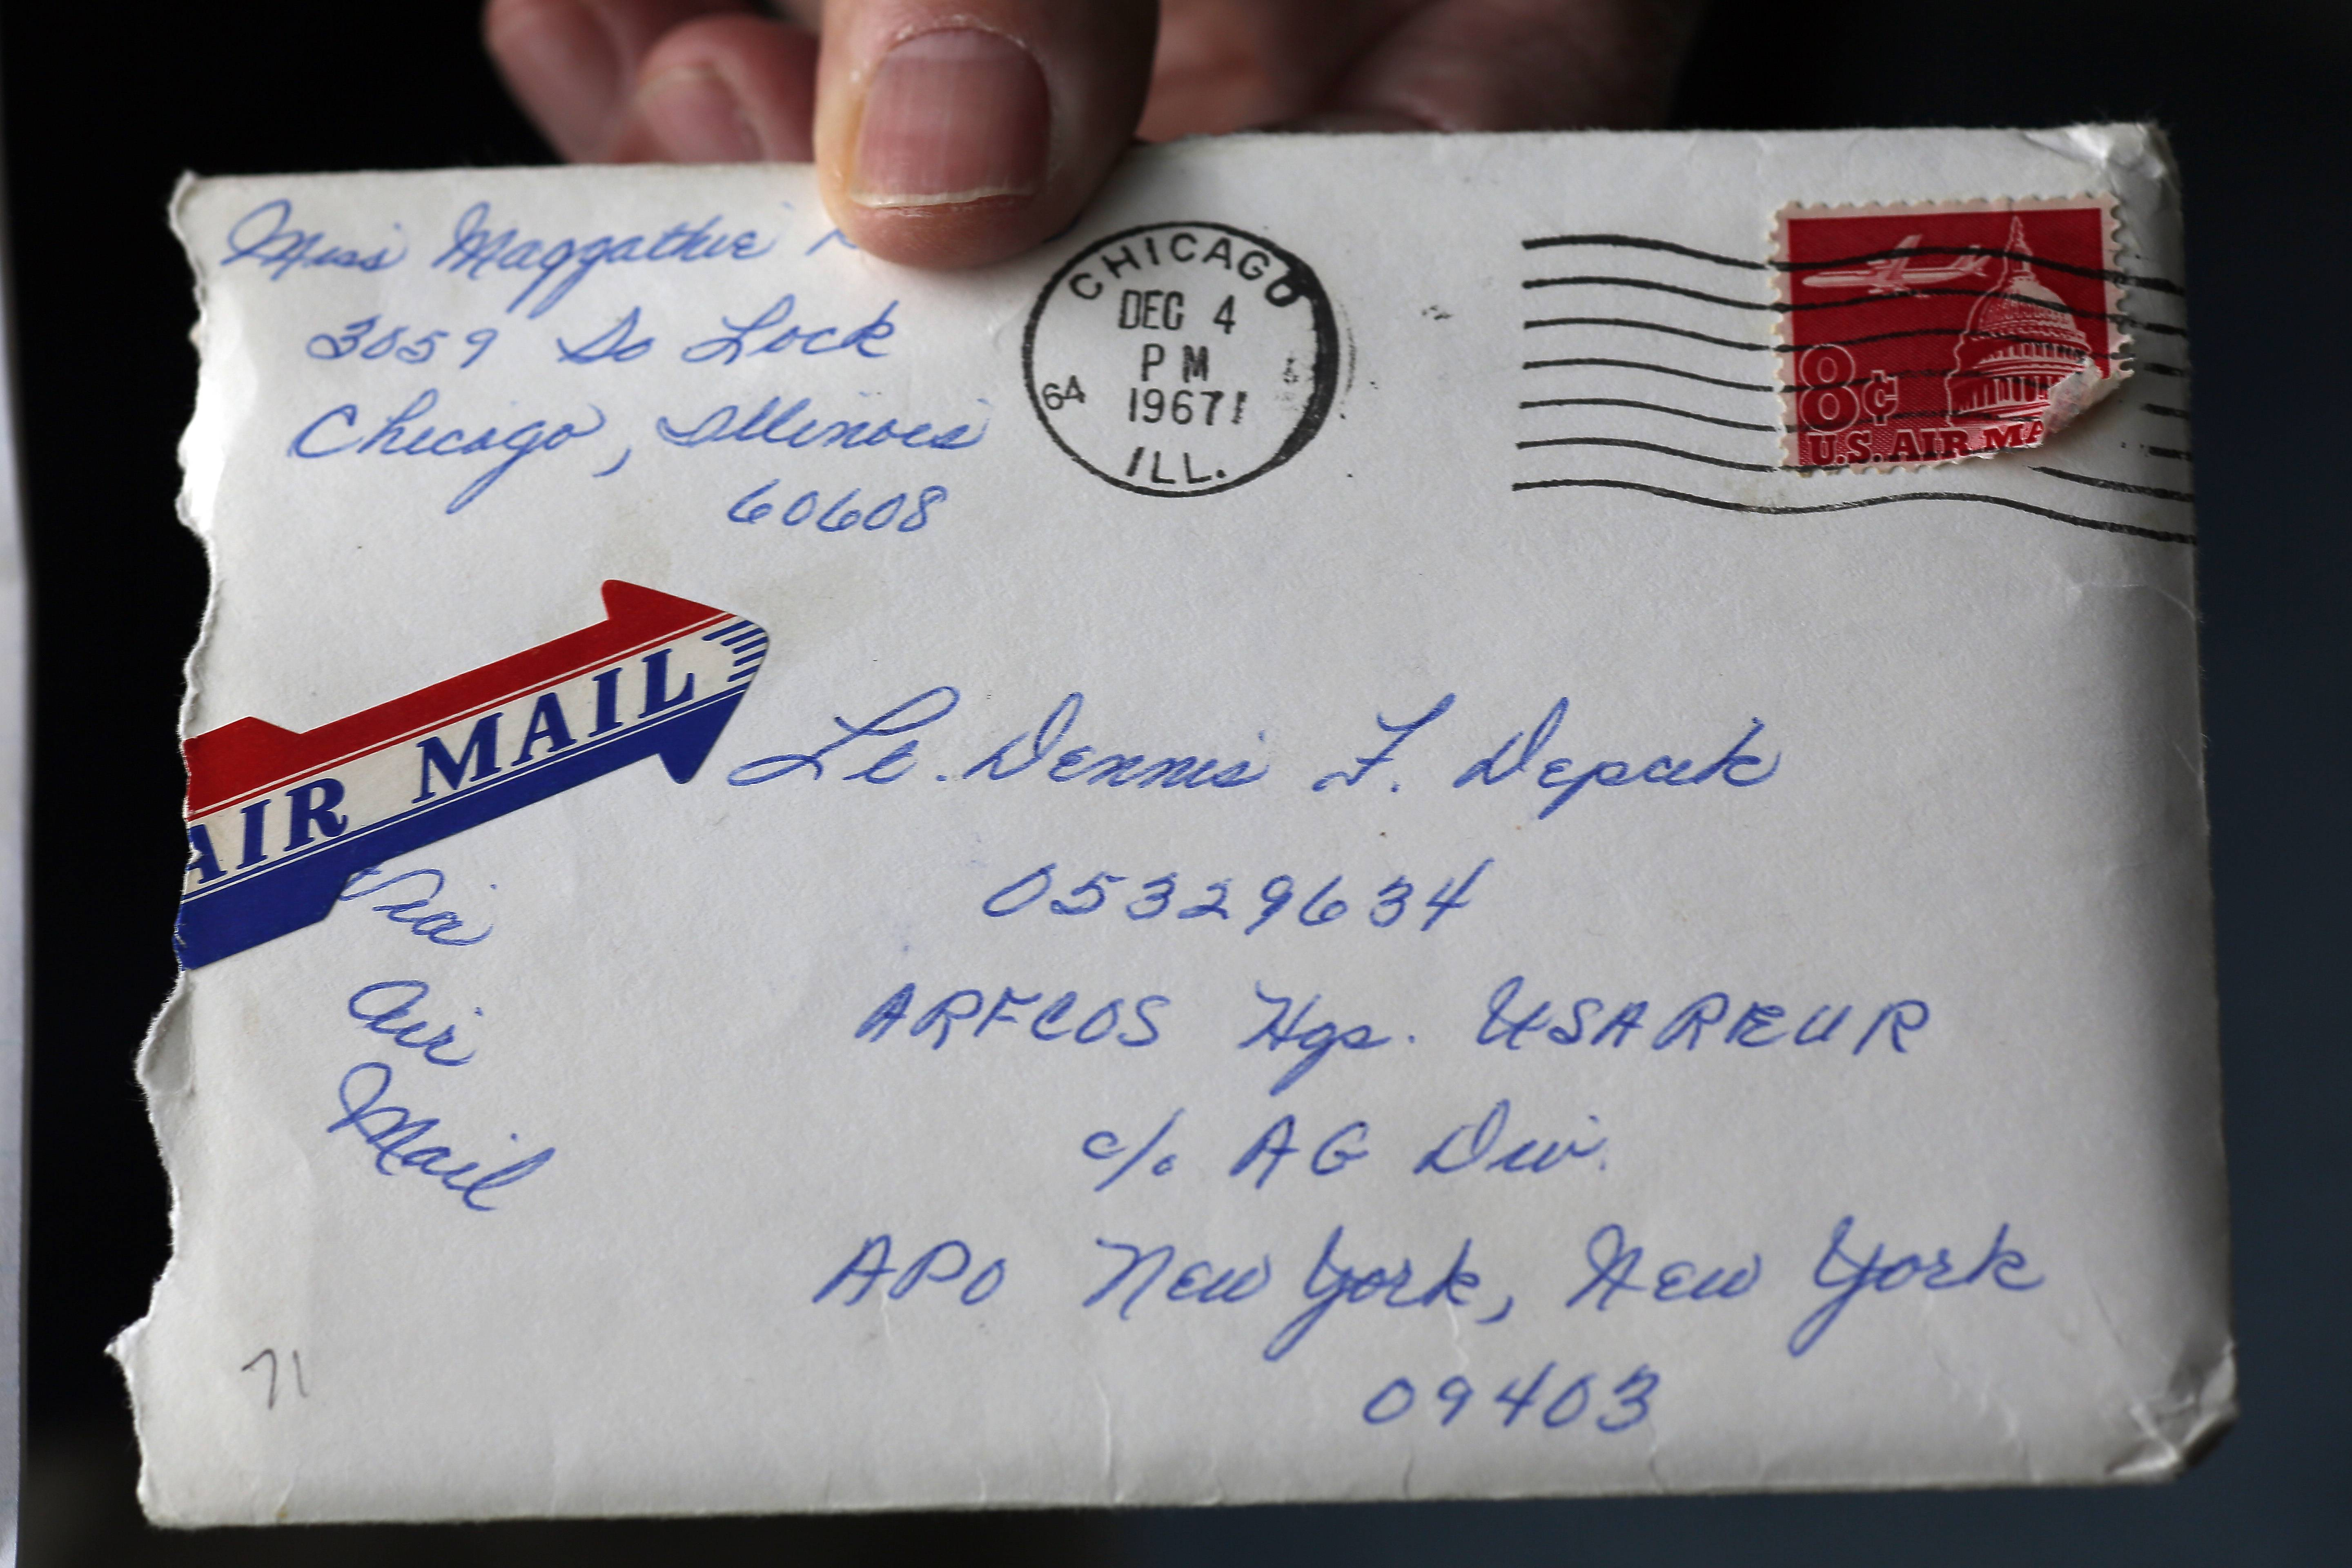 Dennis Depcik of Buffalo Grove found his late wife, Maggie, had kept their courtship letters.